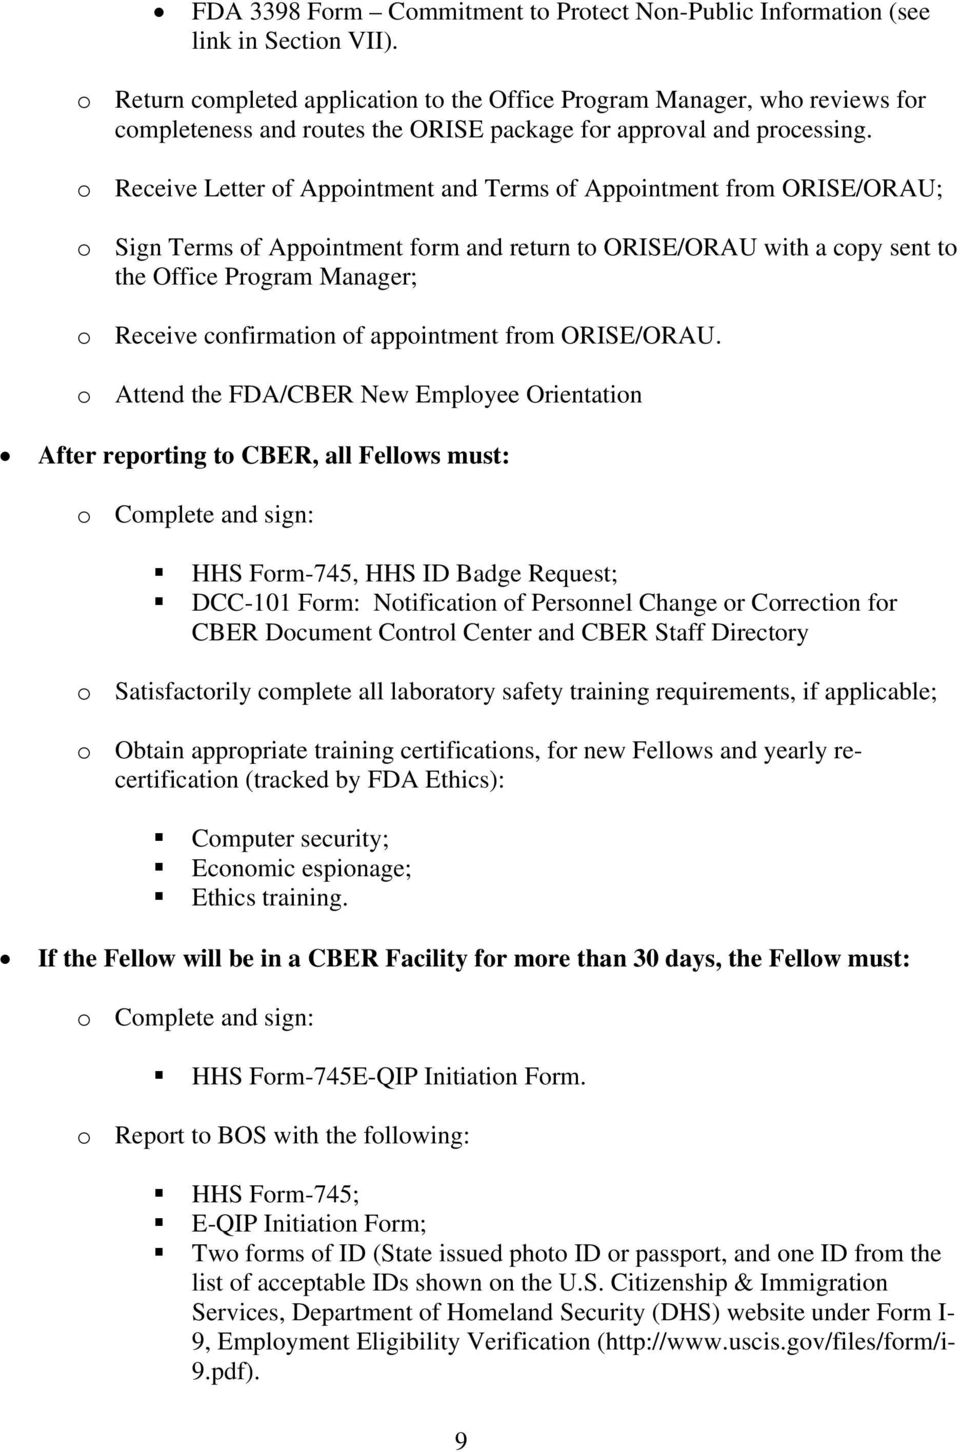 o Receive Letter of Appointment and Terms of Appointment from ORISE/ORAU; o Sign Terms of Appointment form and return to ORISE/ORAU with a copy sent to the Office Program Manager; o Receive